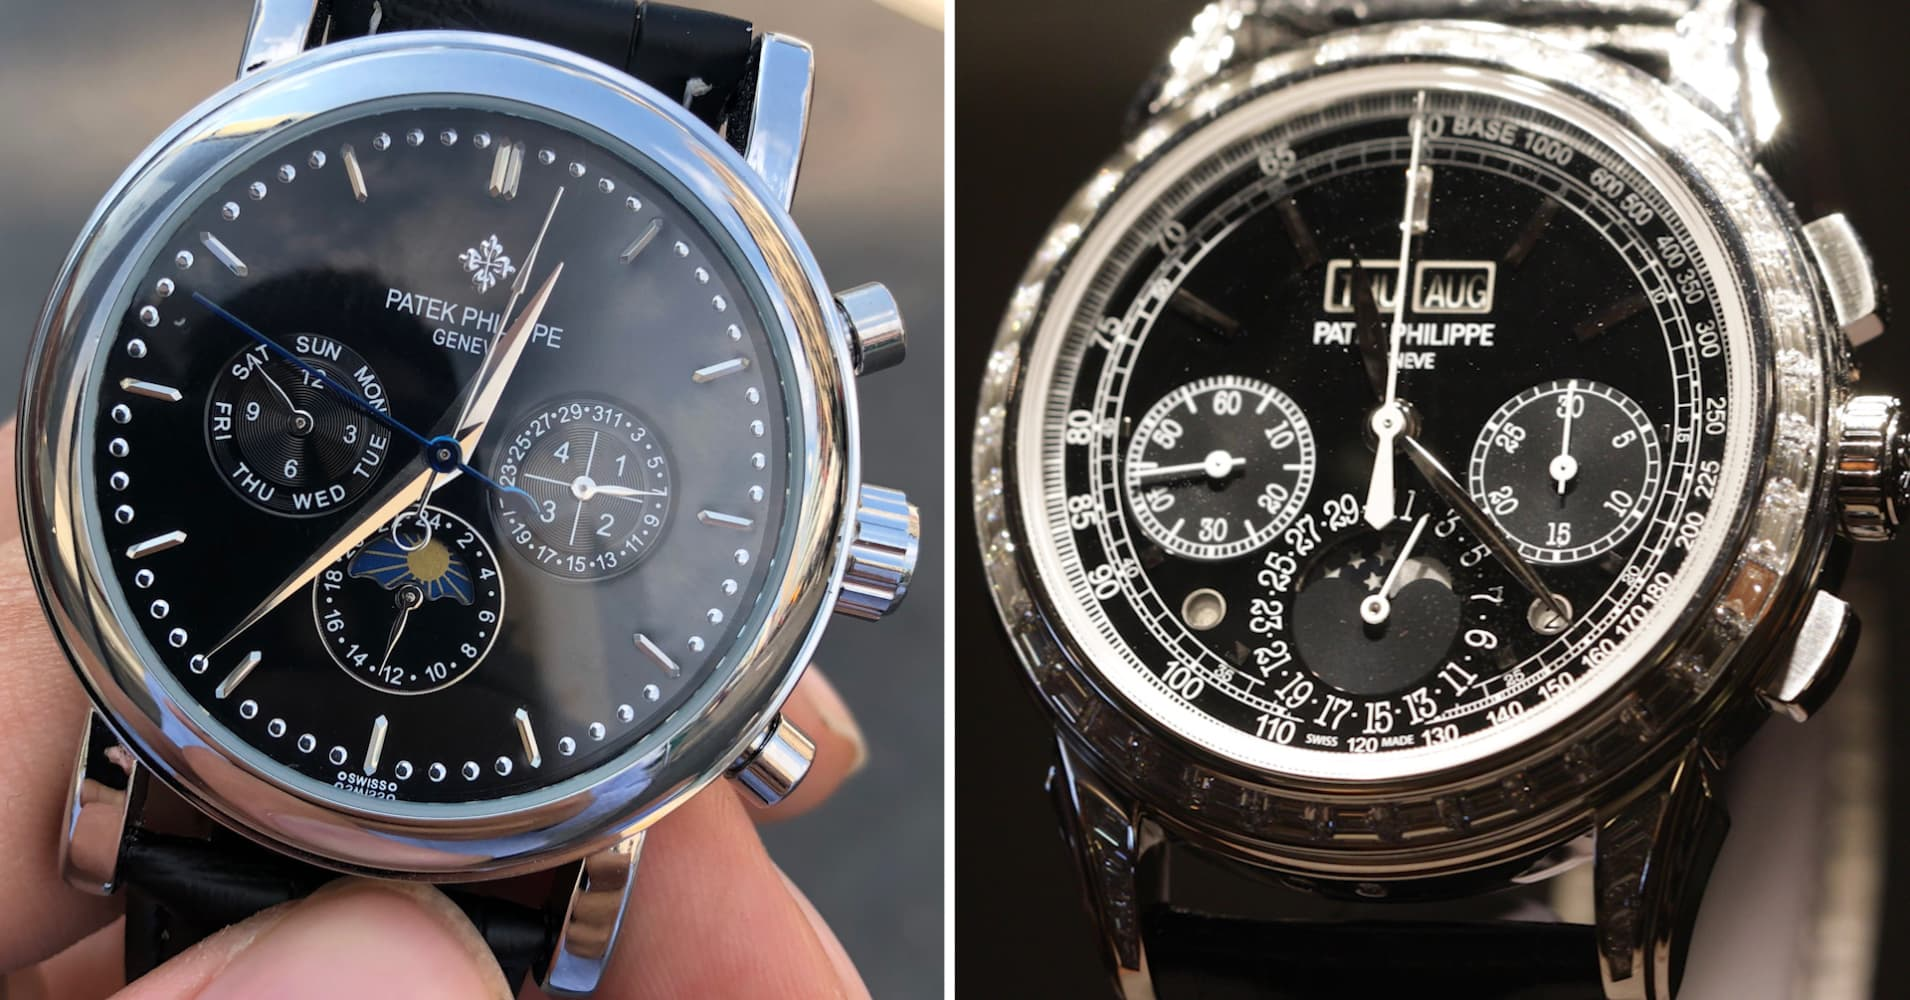 I shopped for a $260,000 Patek Philippe and compared a $60 knock-off